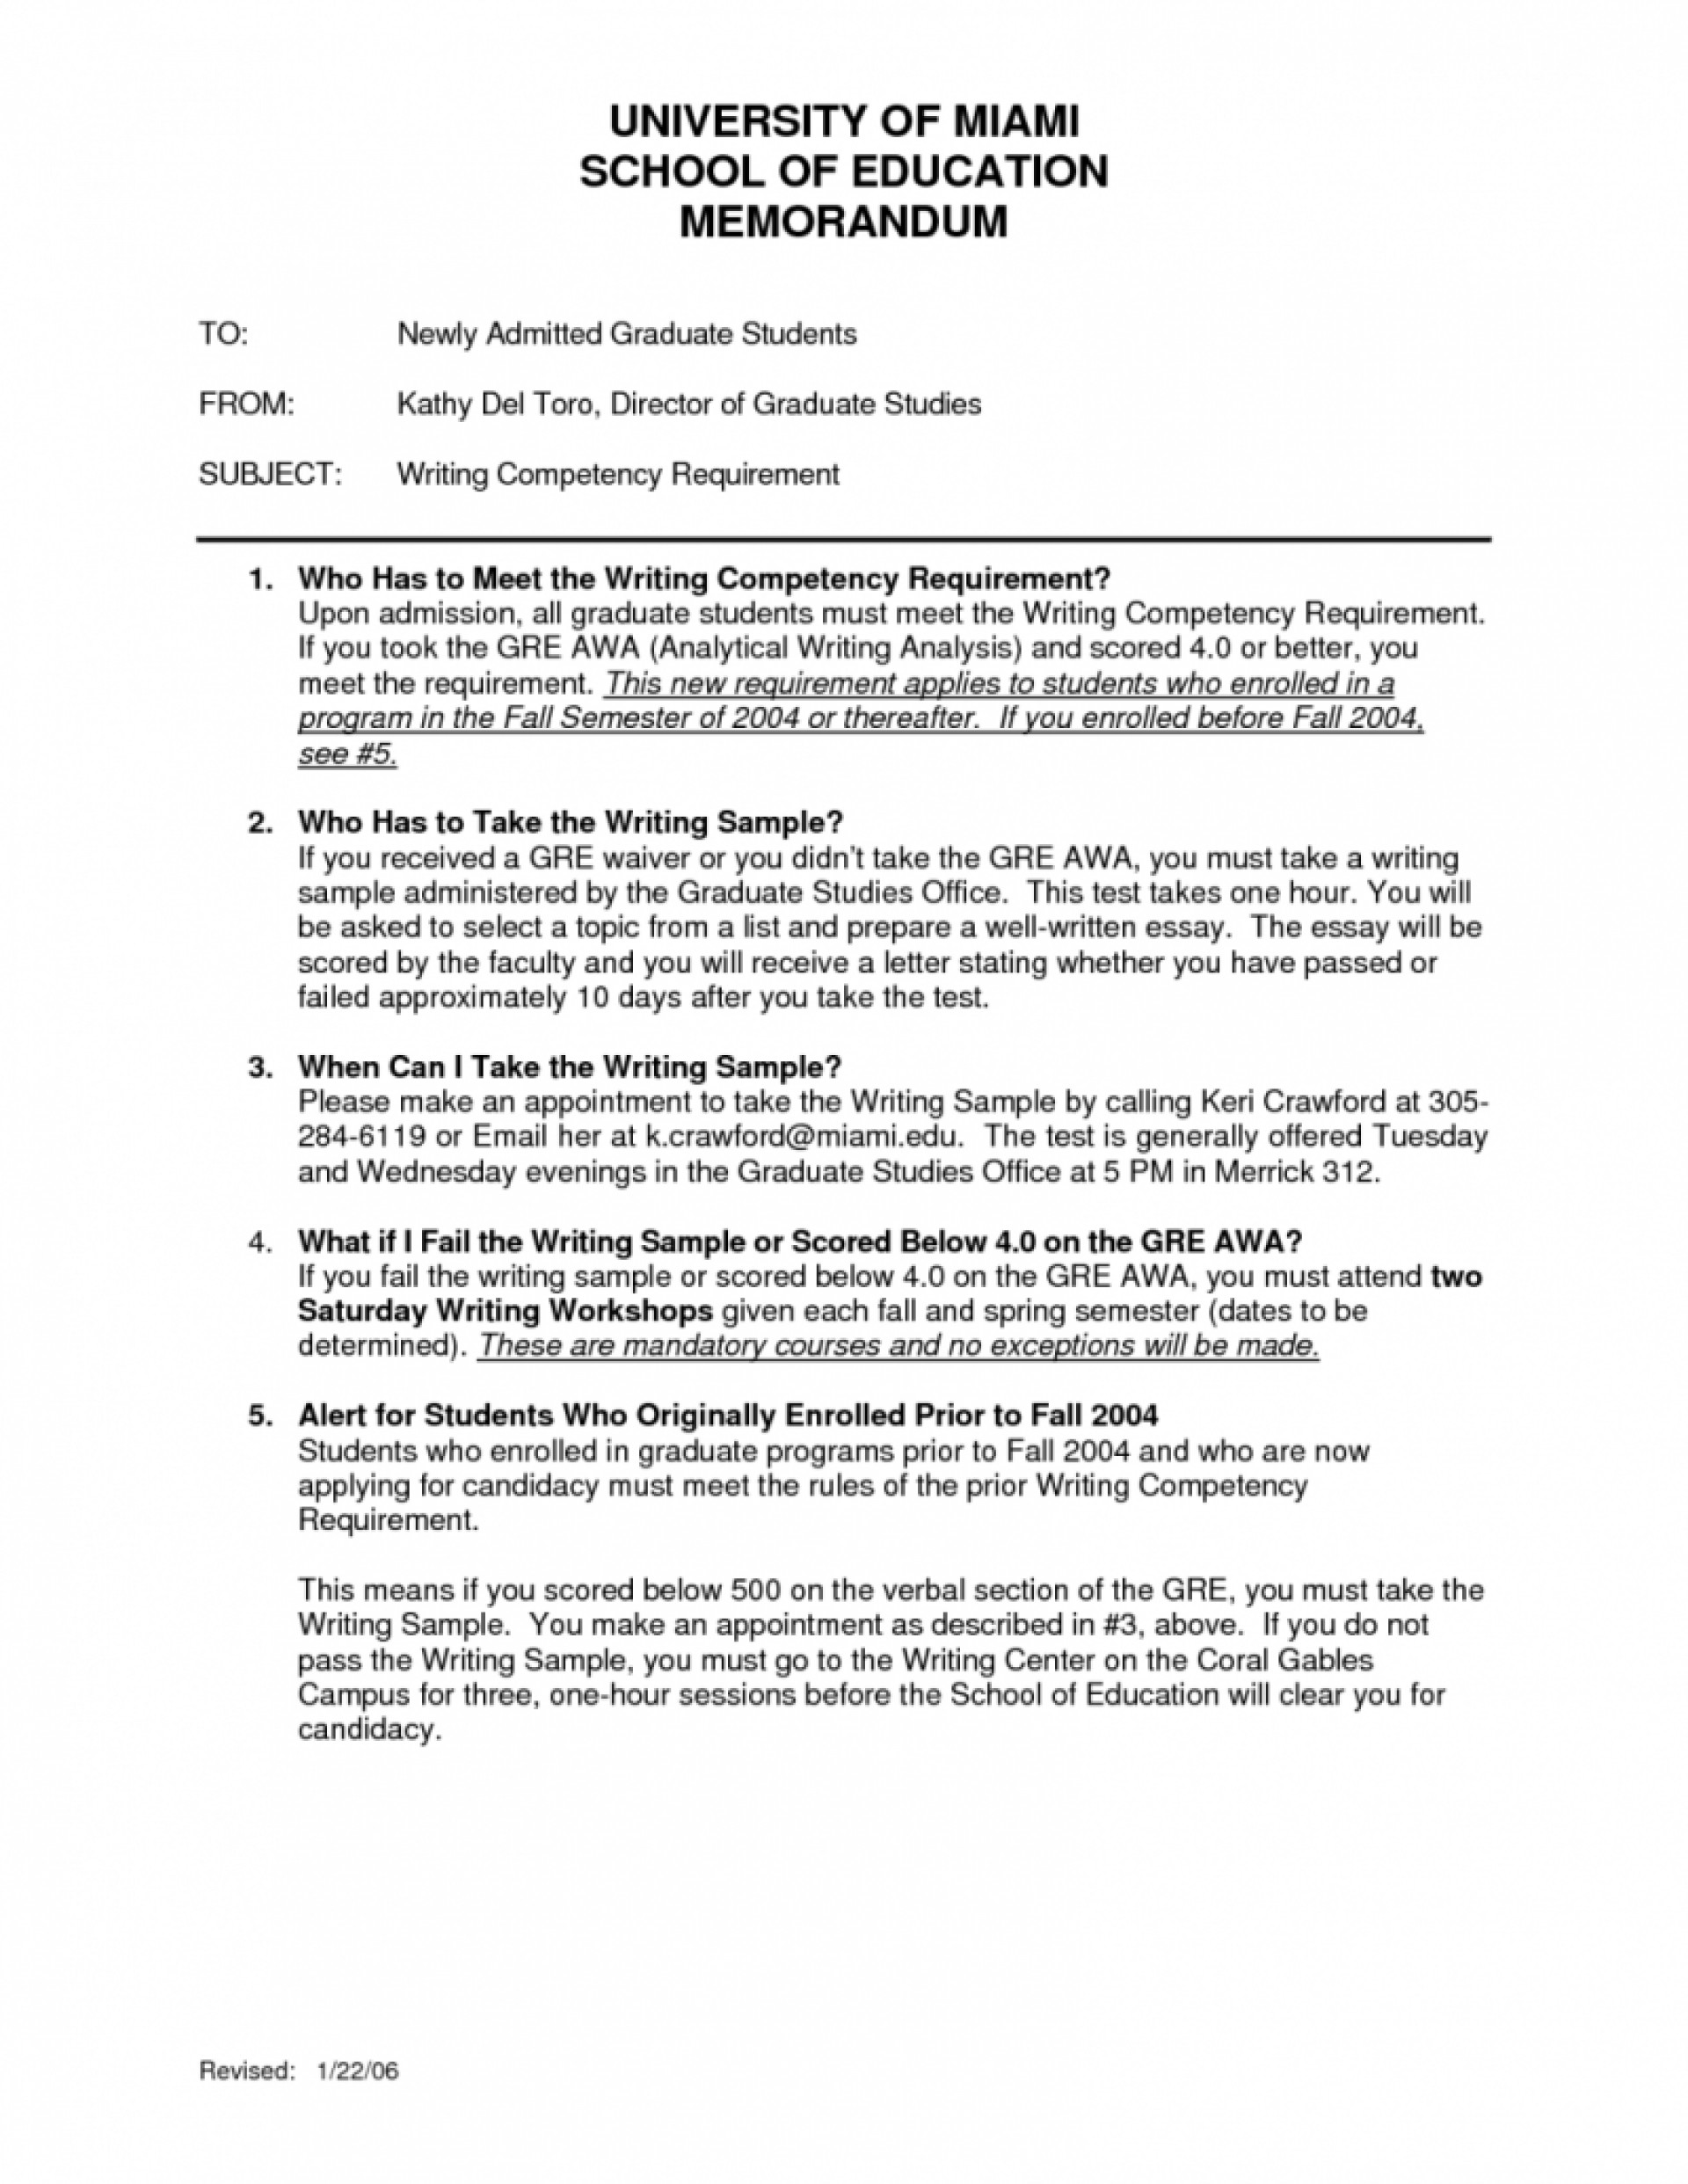 010 Gre Essays Issue Meet The Categories Of Essay Topics Writing Books Format Examples Pdf Strategies Tips Preparation Practice 1048x1356resize8002c1035 Example Unique Sample Prompts Argument 1920